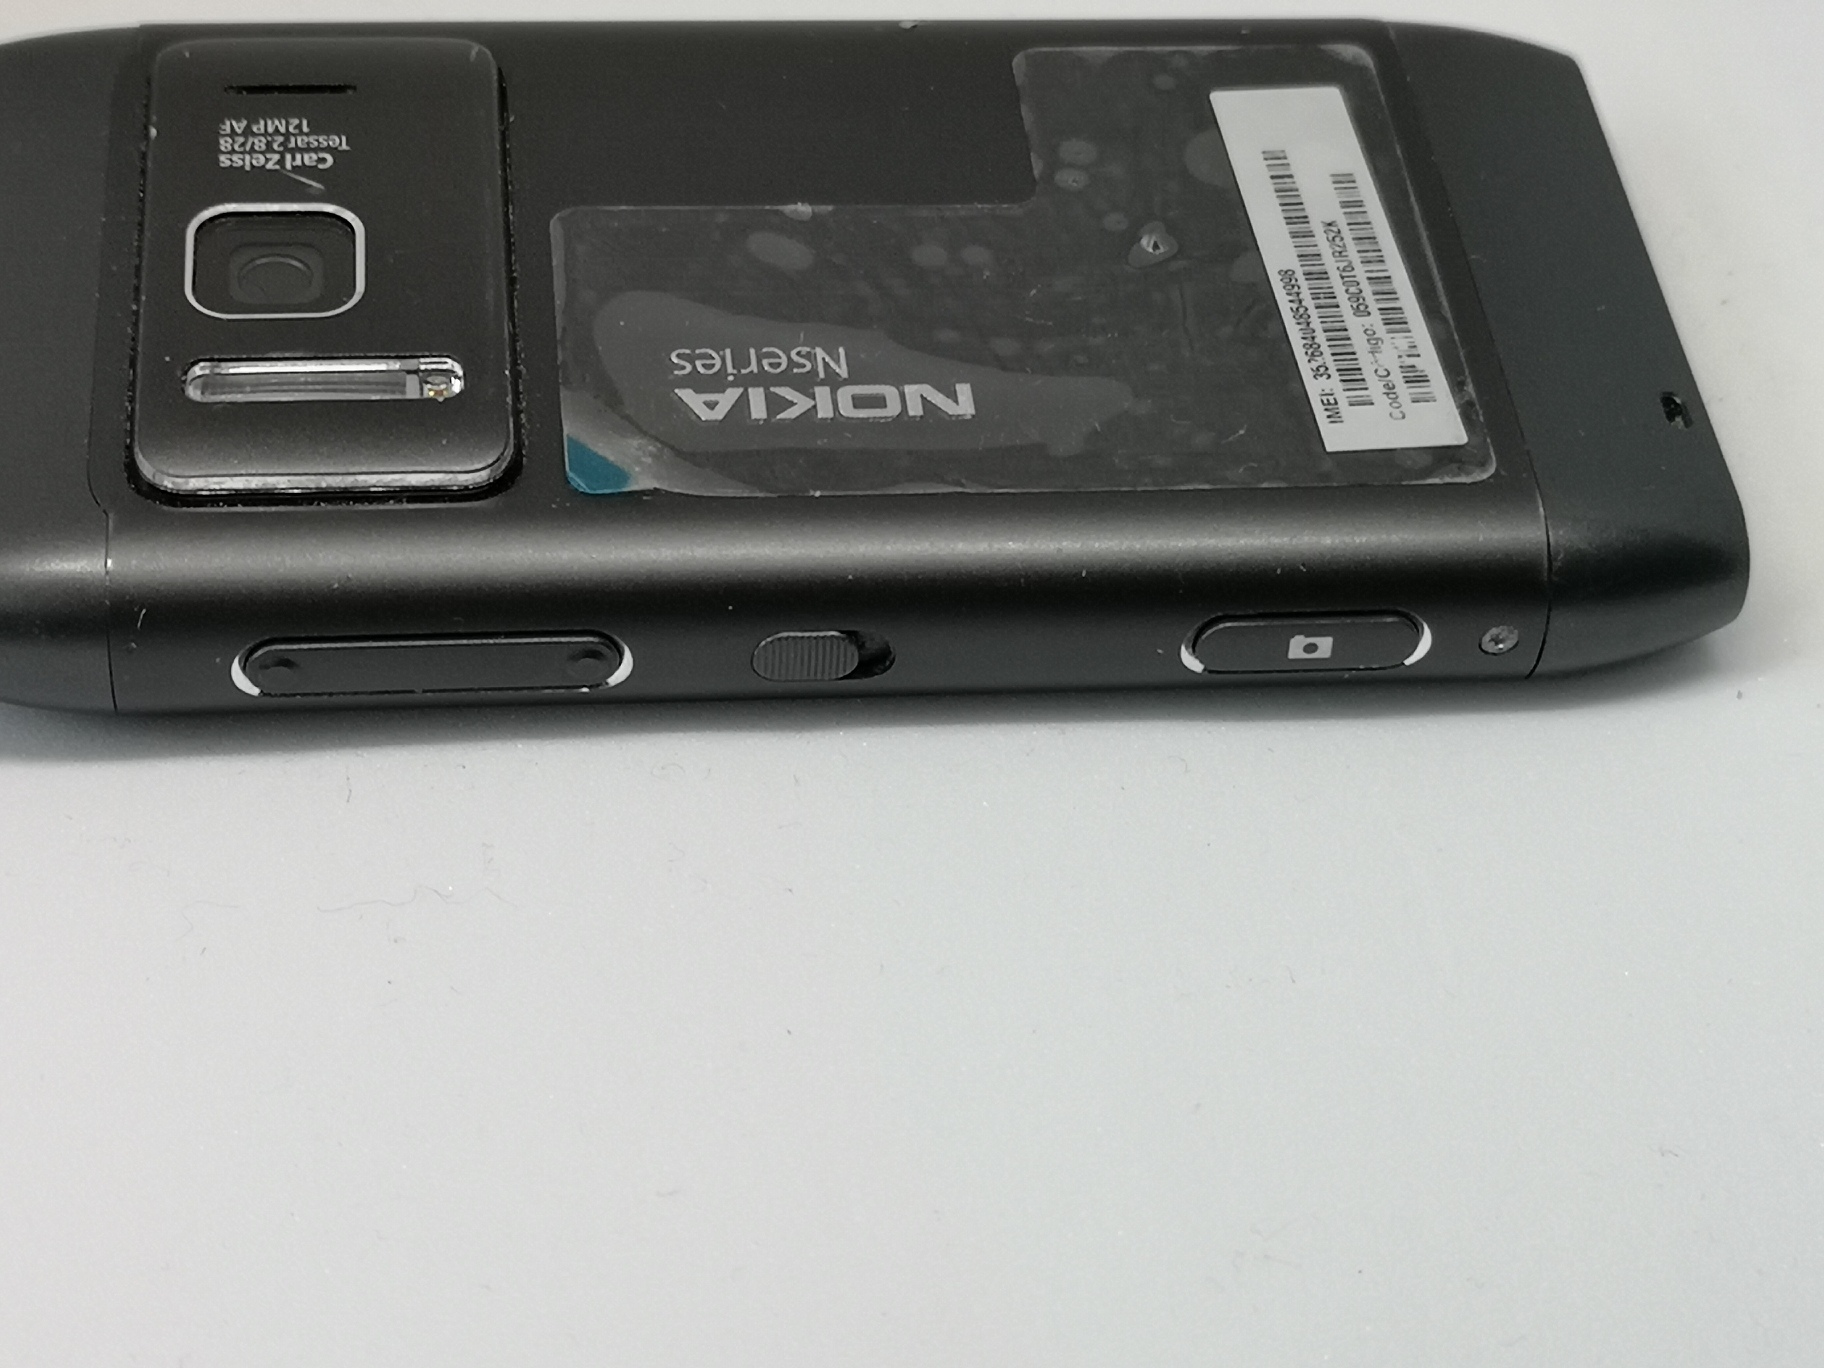 Nokia N8 Review - Brand New Full-Featured Mobile Phone